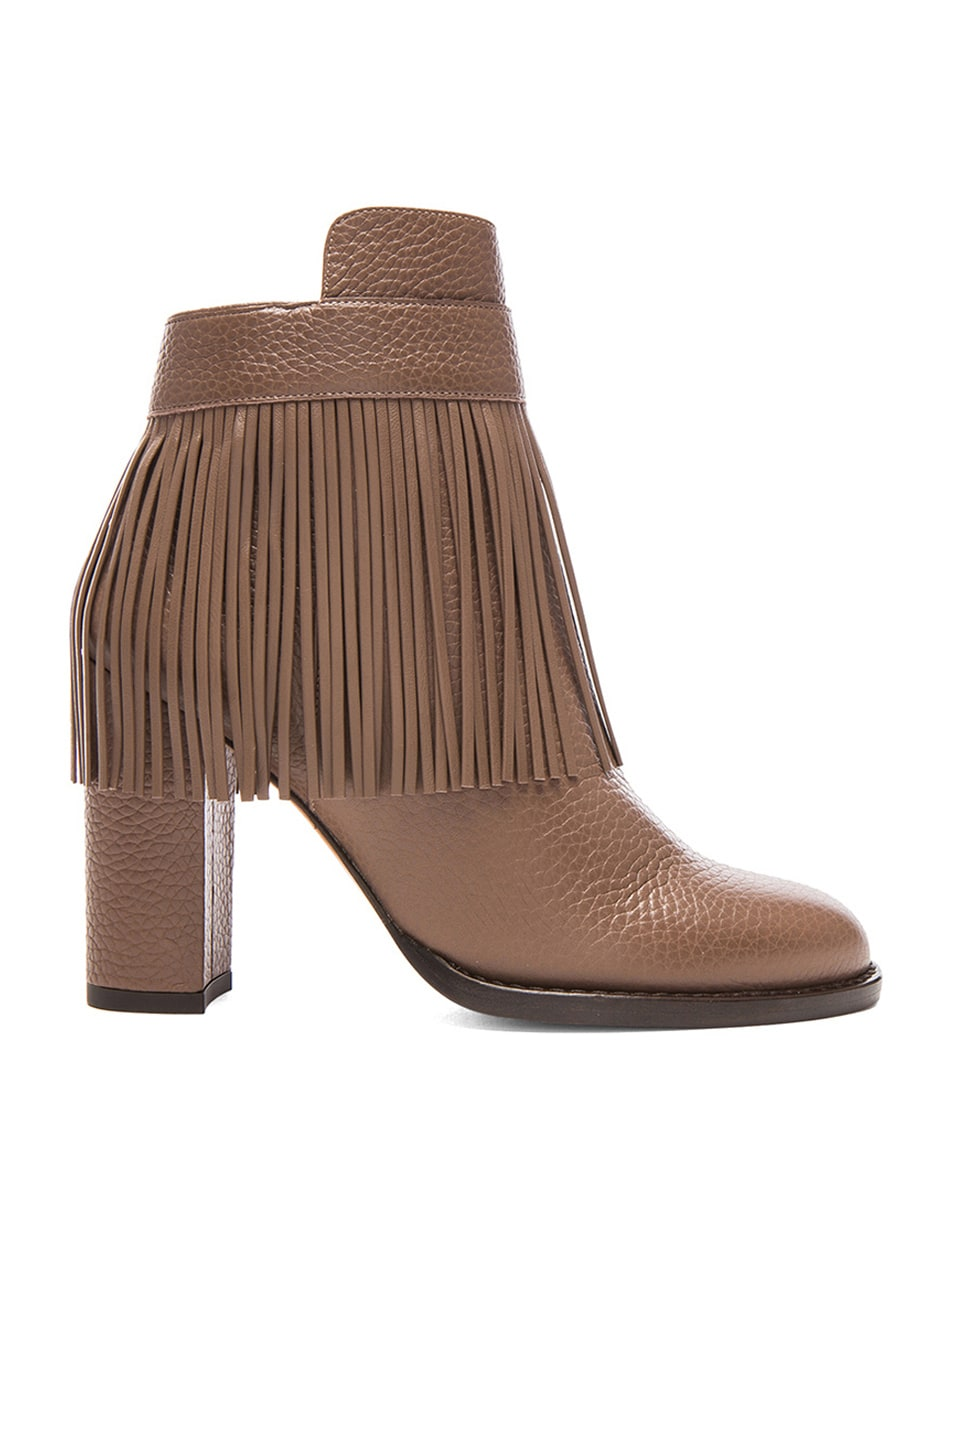 Image 1 of Valentino Rockee Fringe Ankle Leather Booties in Dark Noisette